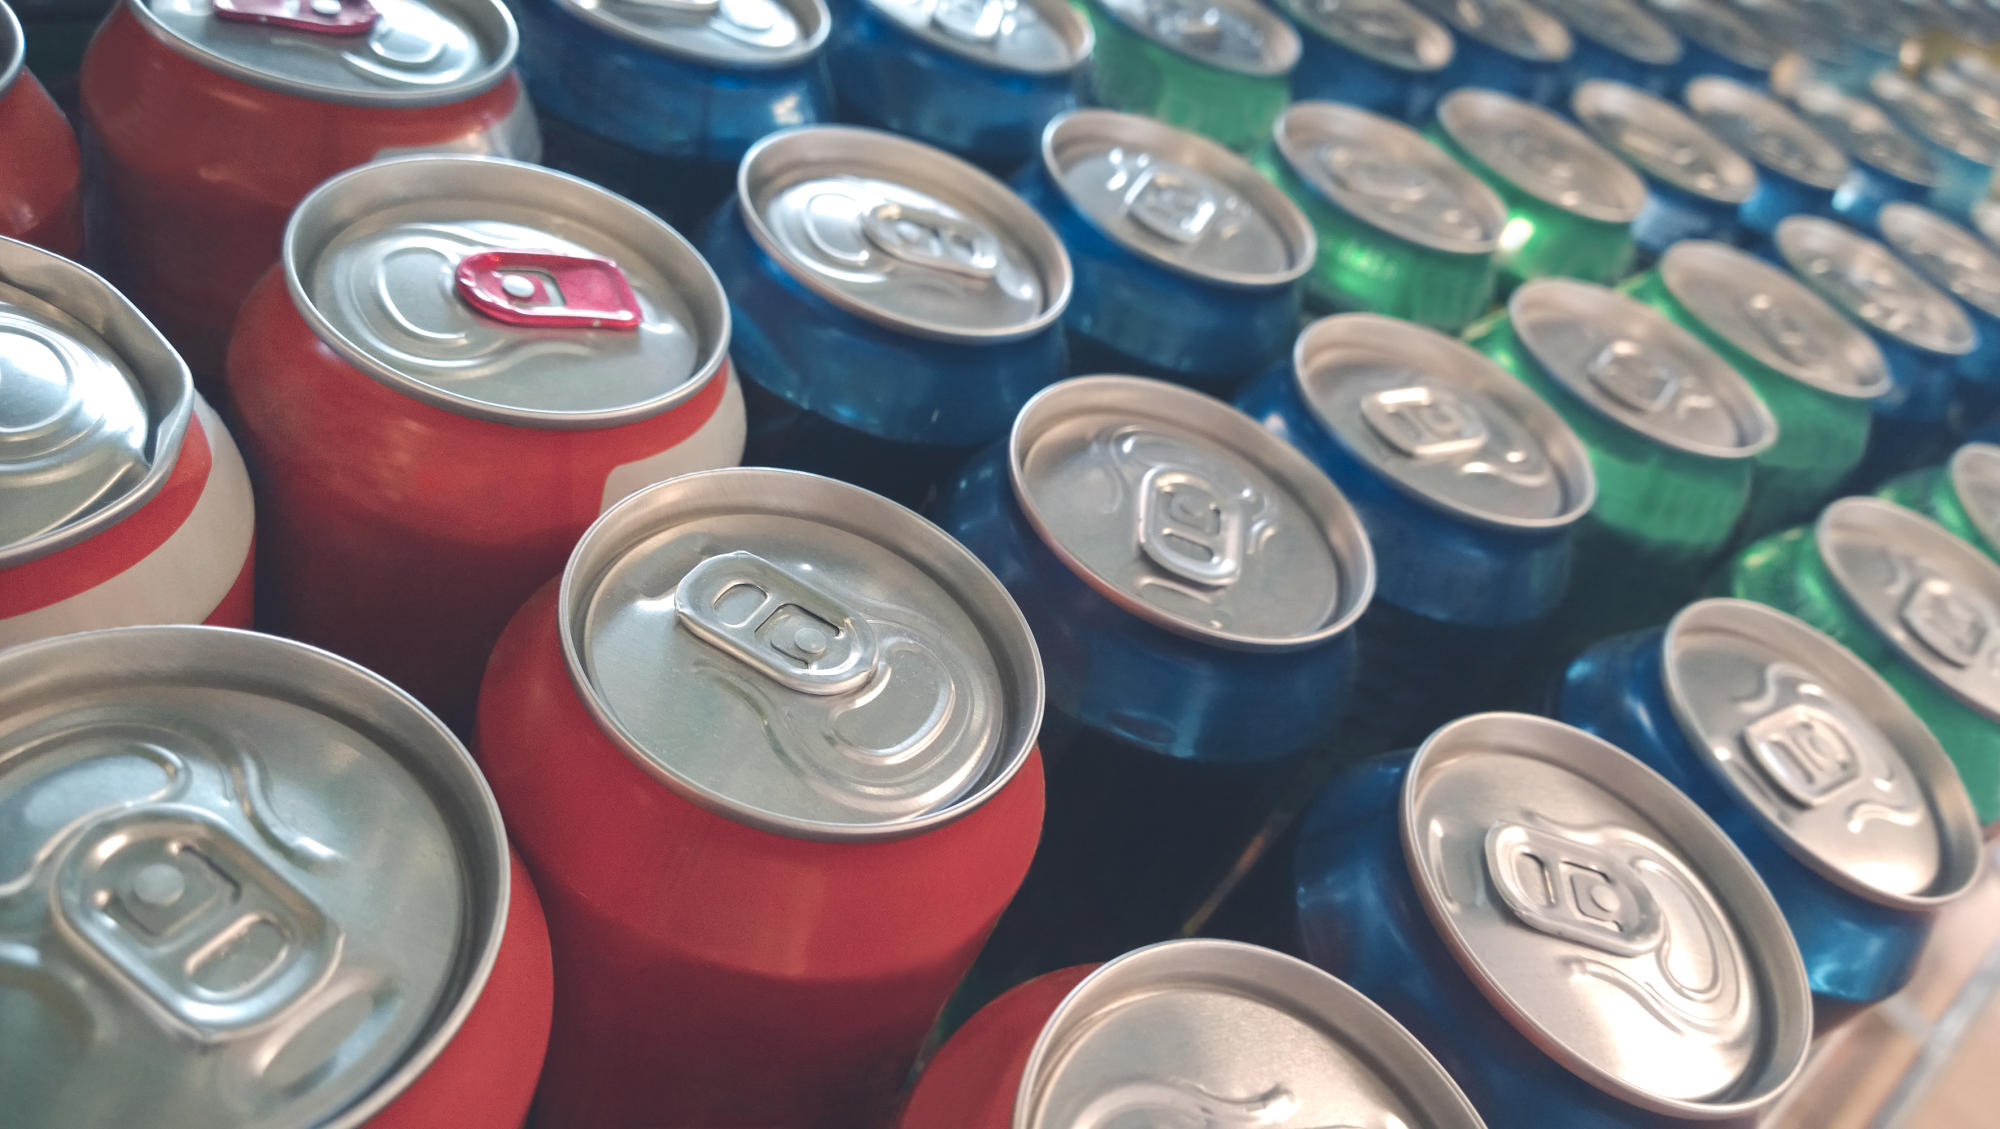 Two sugary drinks a day doubles a woman's risk of bowel cancer before 50, study suggests